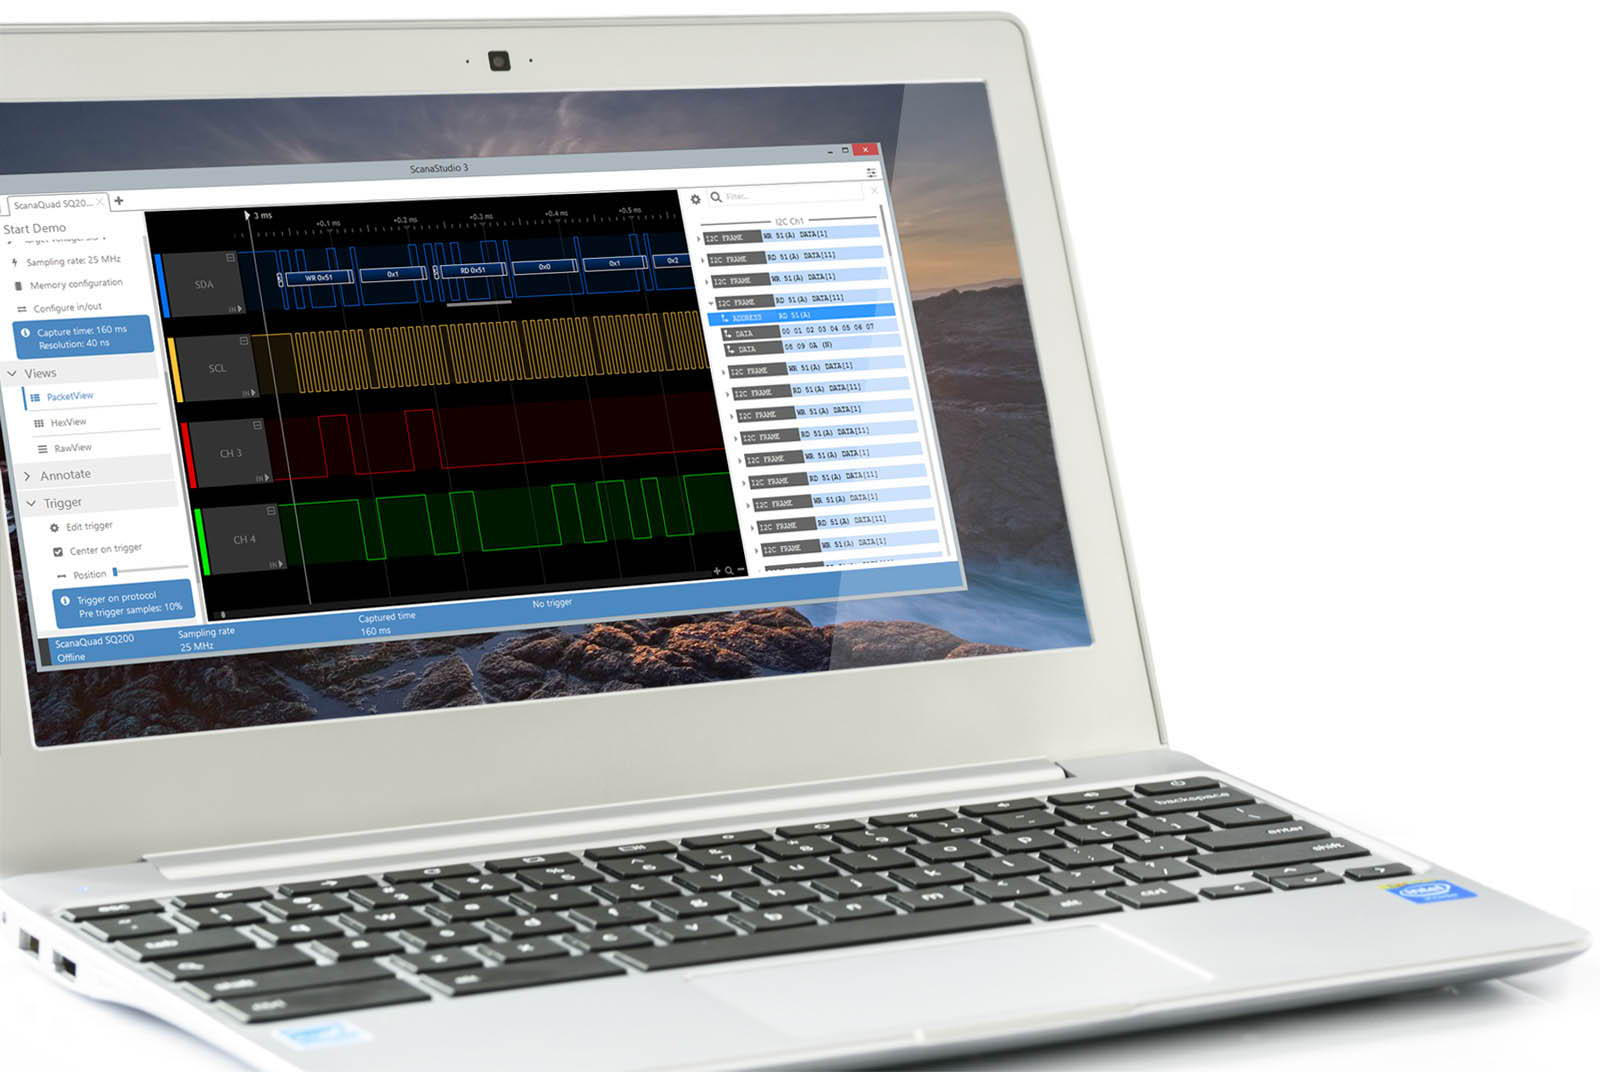 logic analyzer software runs on laptop